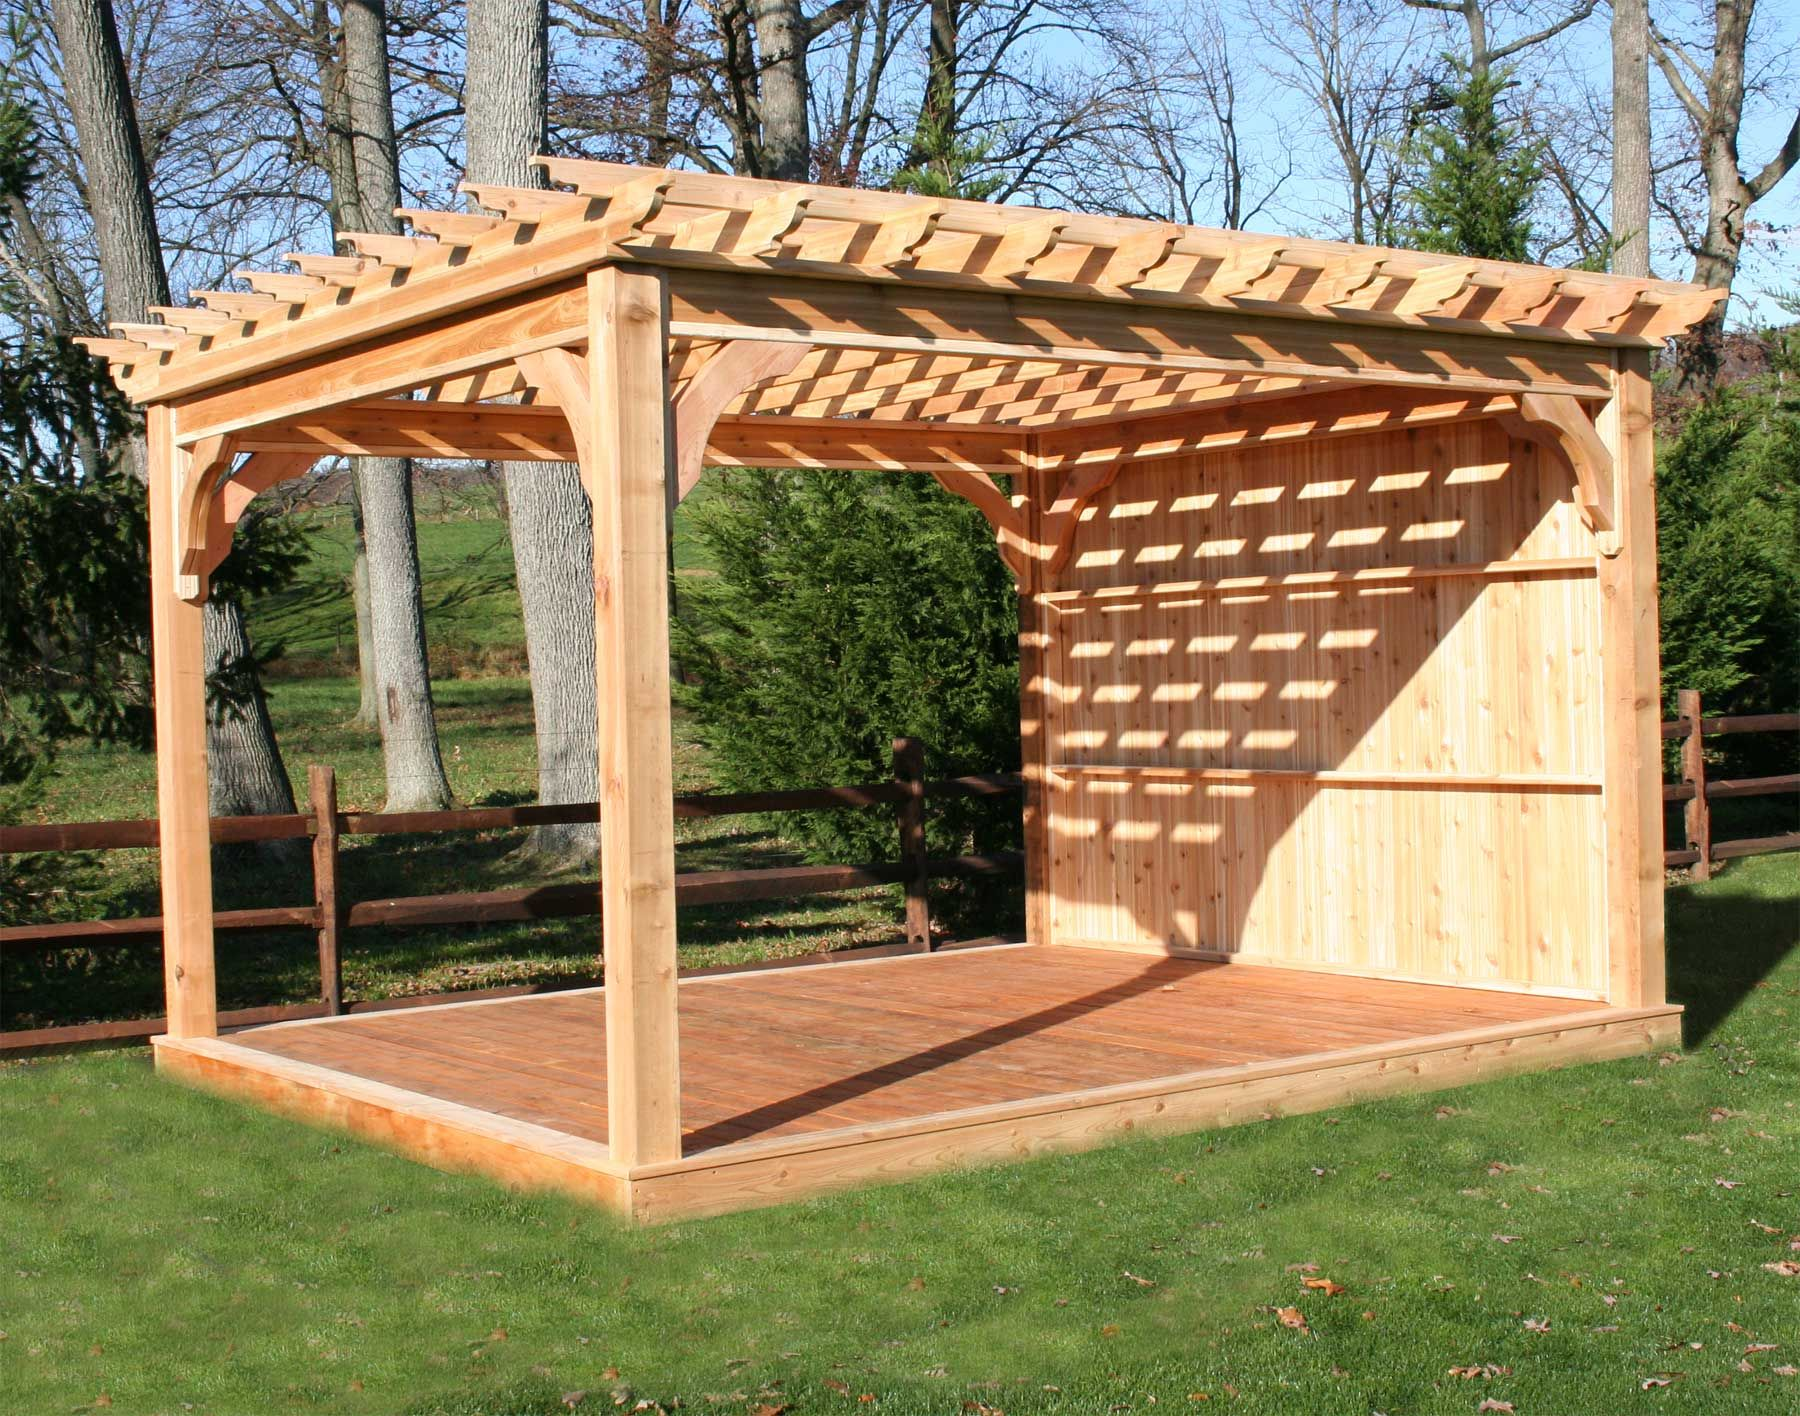 red cedar free standing 4 beam pergolas 6x6 posts 2x6 main runners - Free Pergola Designs For Patios